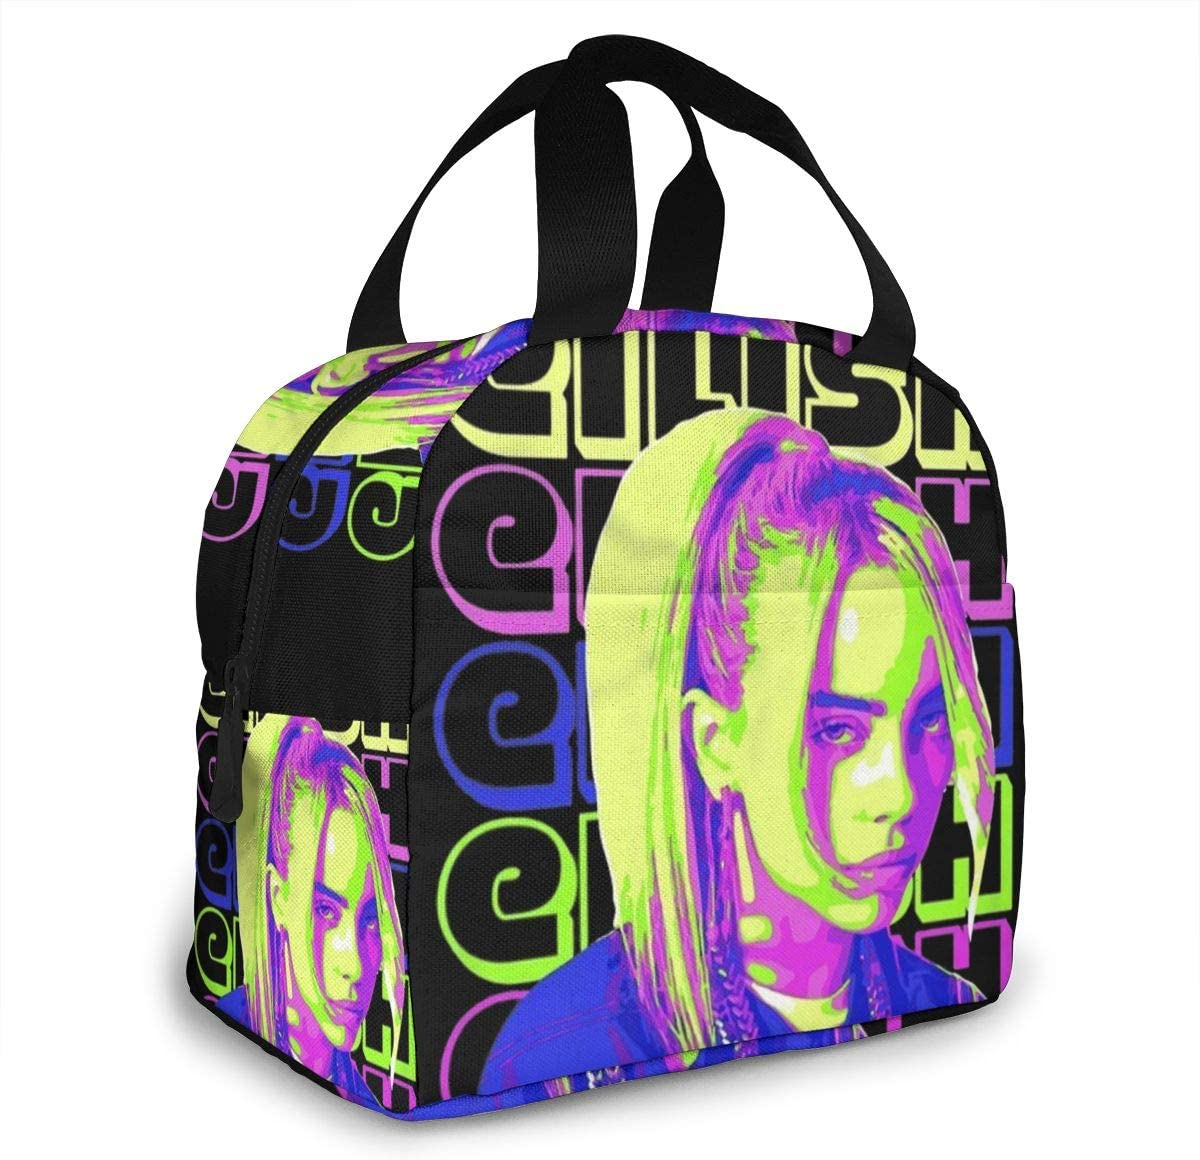 Billie-Eilish Lovers Leakproof Lunch Bag Water-Resistant Lunch Box Leakproof Cooler Lunch Tote Bag for Work//School//Picnic